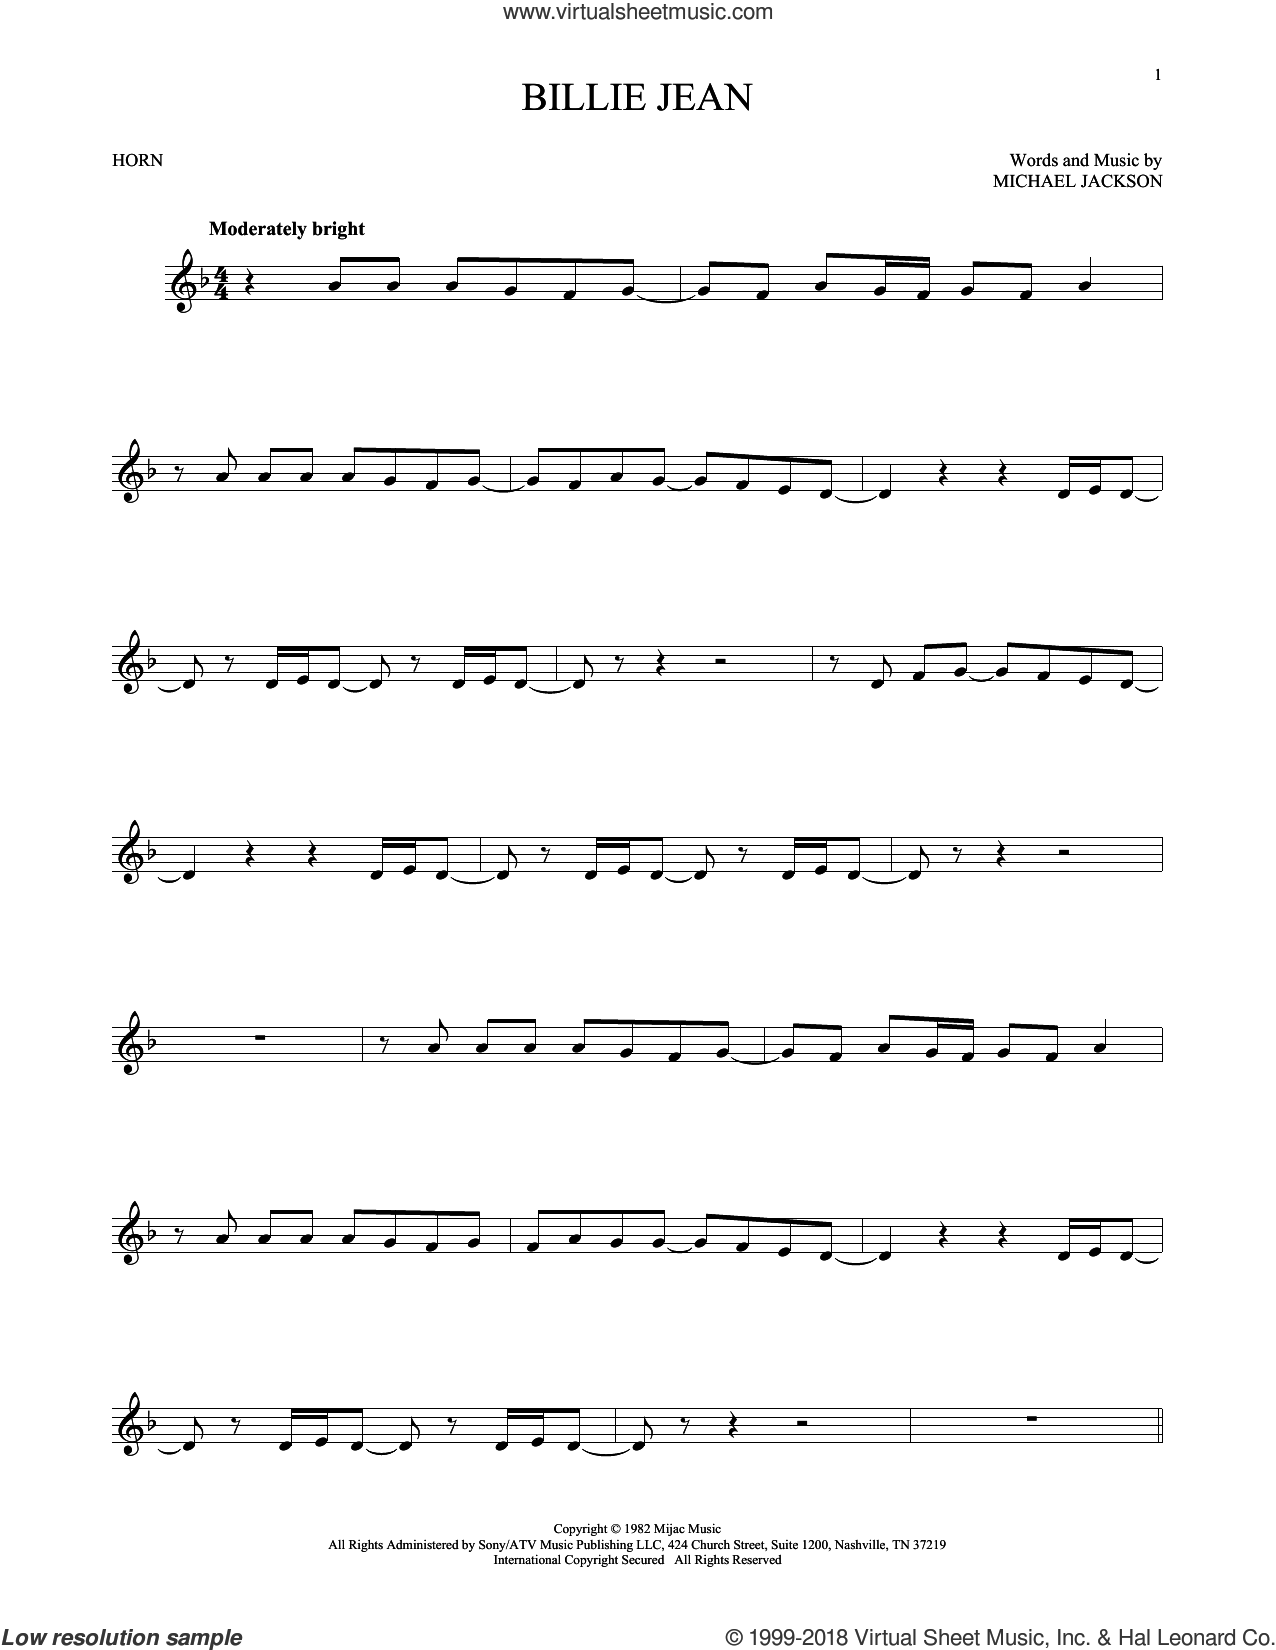 Billie Jean sheet music for horn solo by Michael Jackson, intermediate